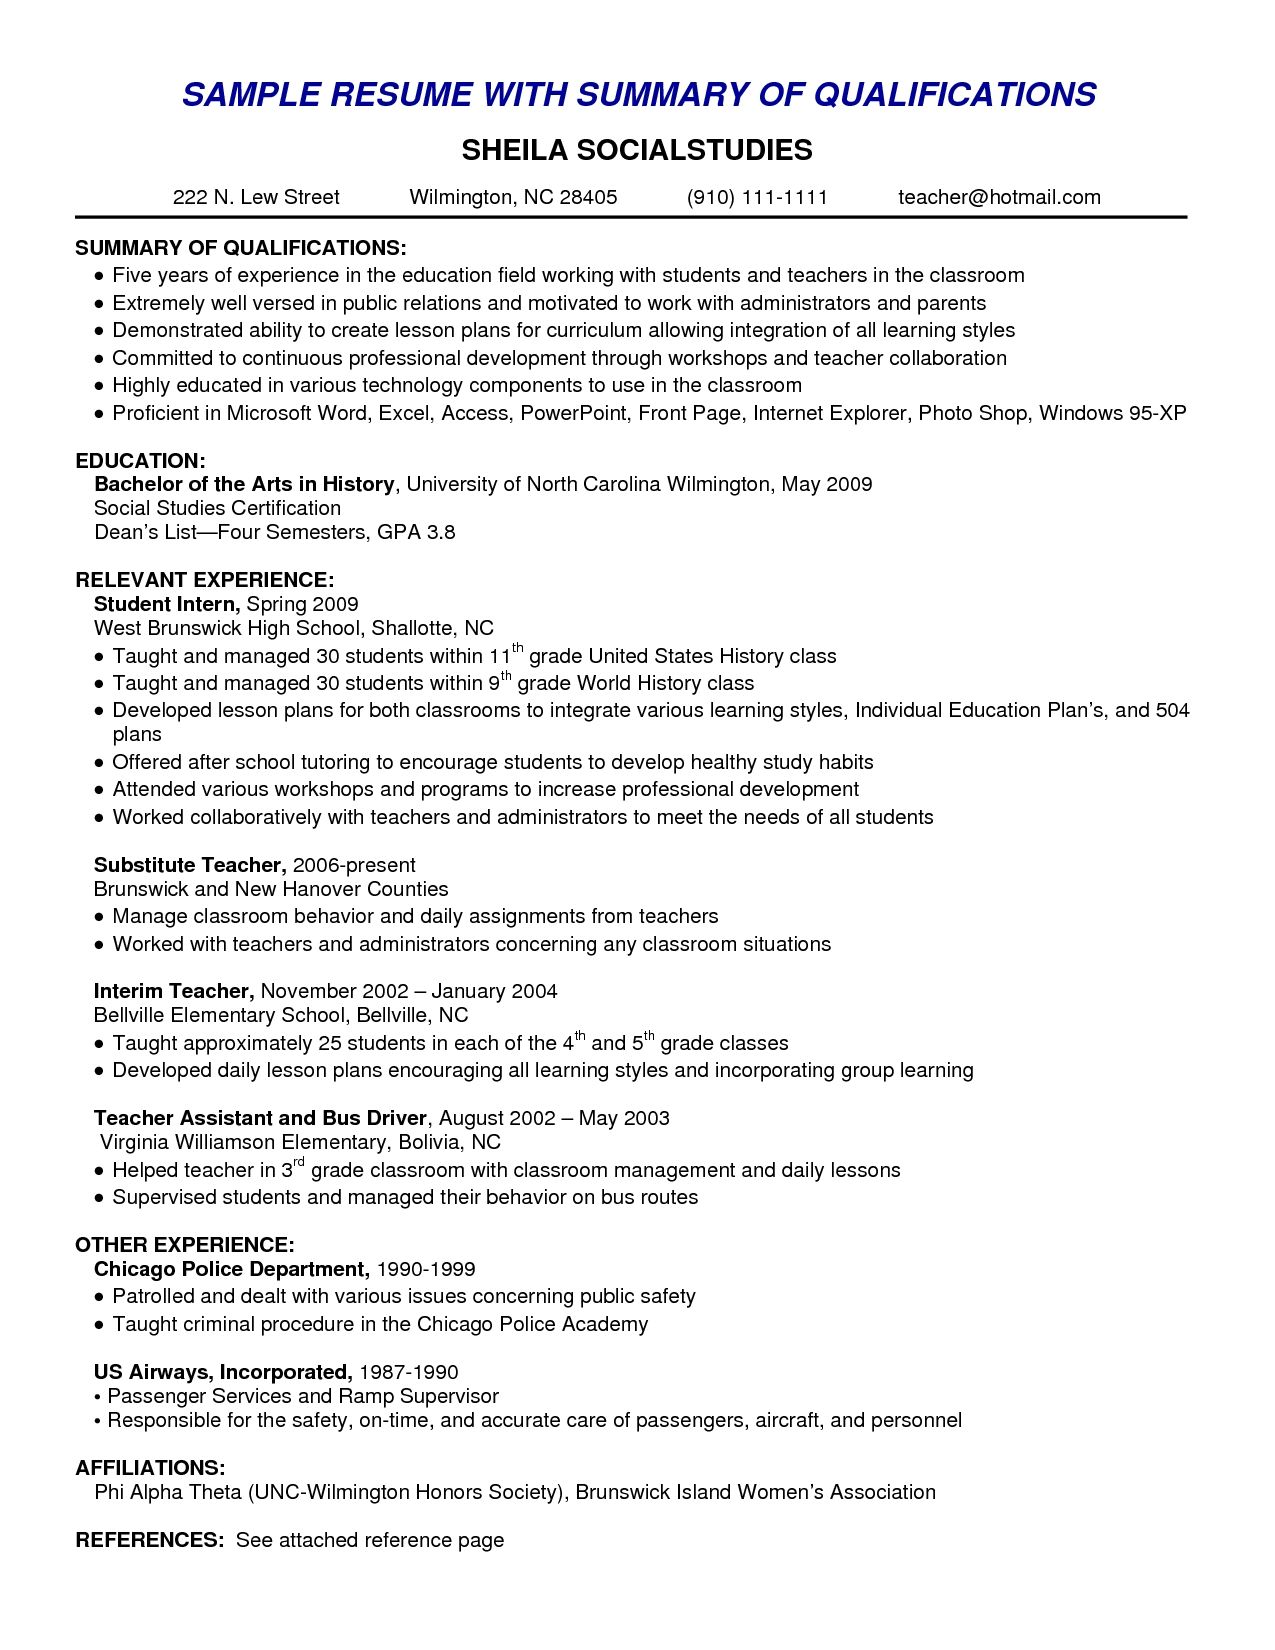 resume skills summary examples example of skills summary for resume amusing summary of skills - Sample Of Summary For Resume